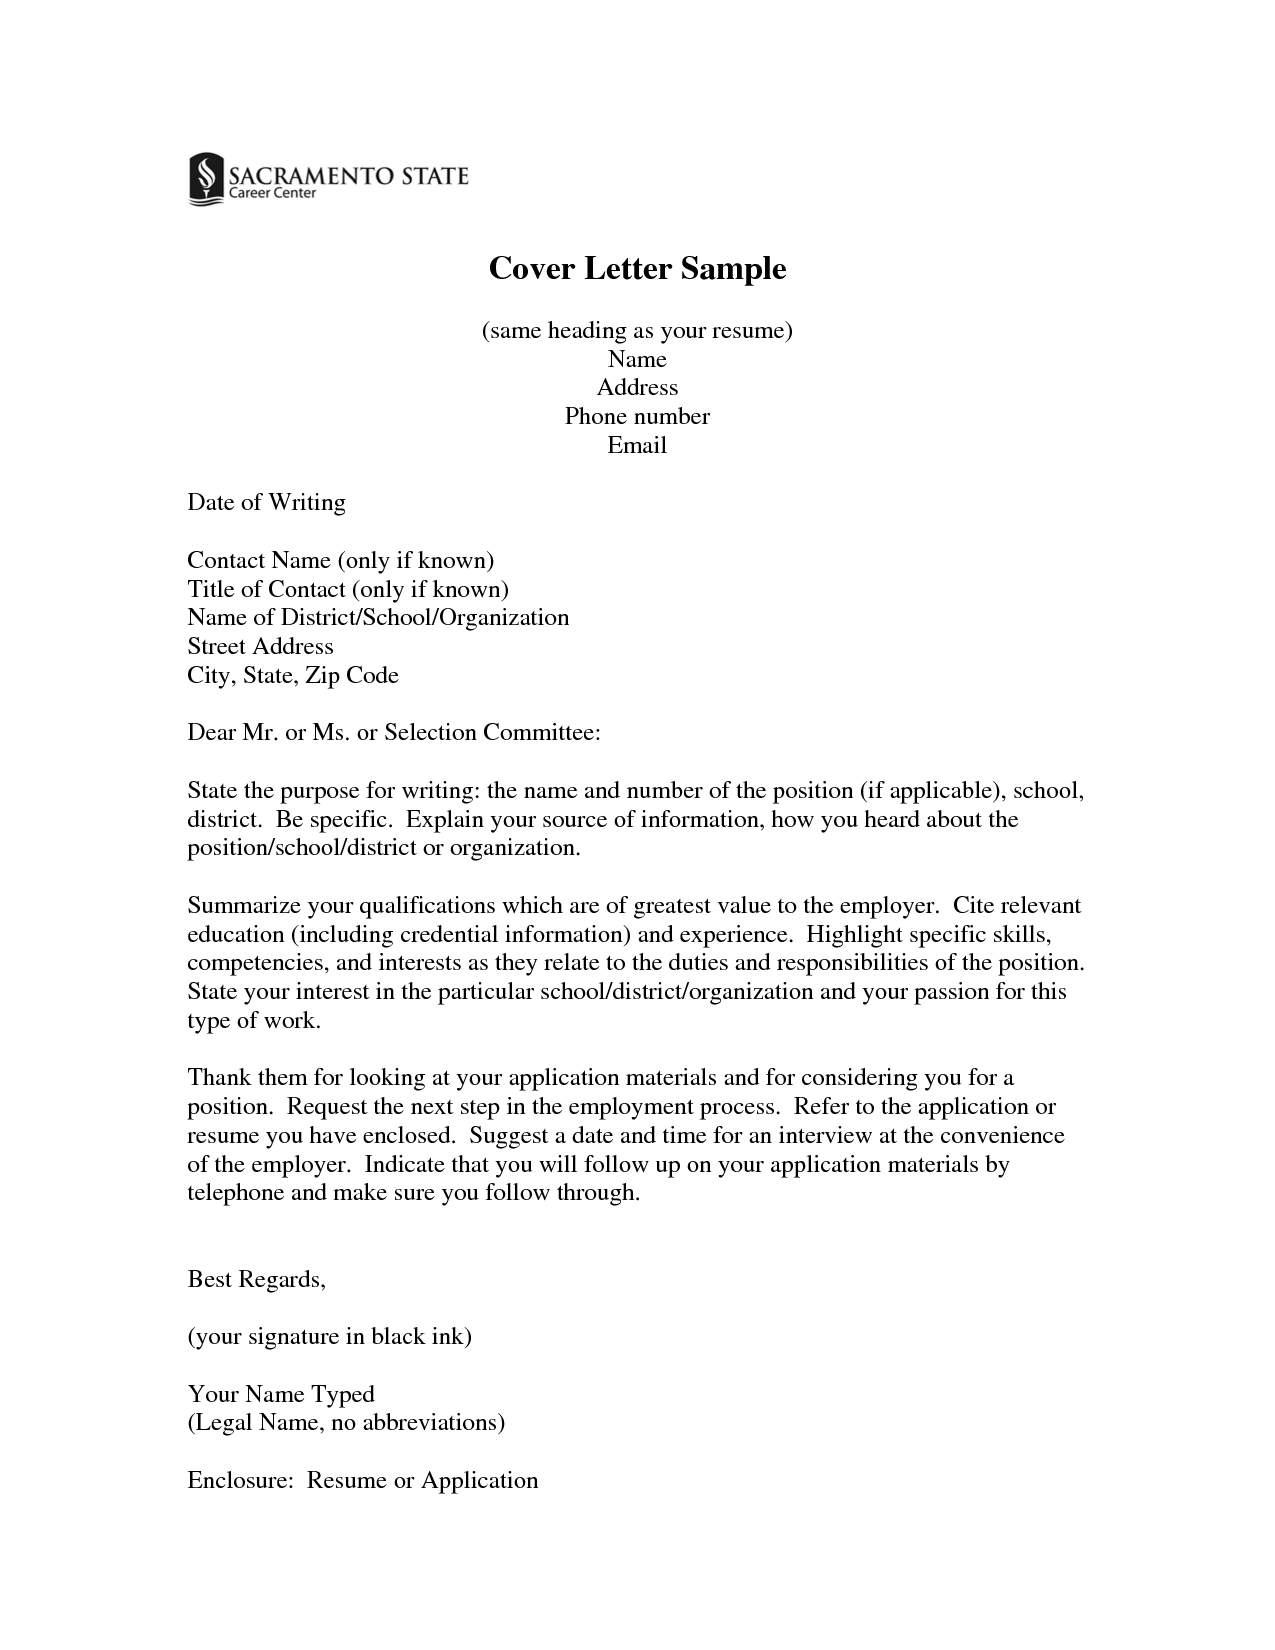 Same Cover Letters For Resume | Cover Letter Sample Same Heading As Your  Resume Name Address  Heading For Resume